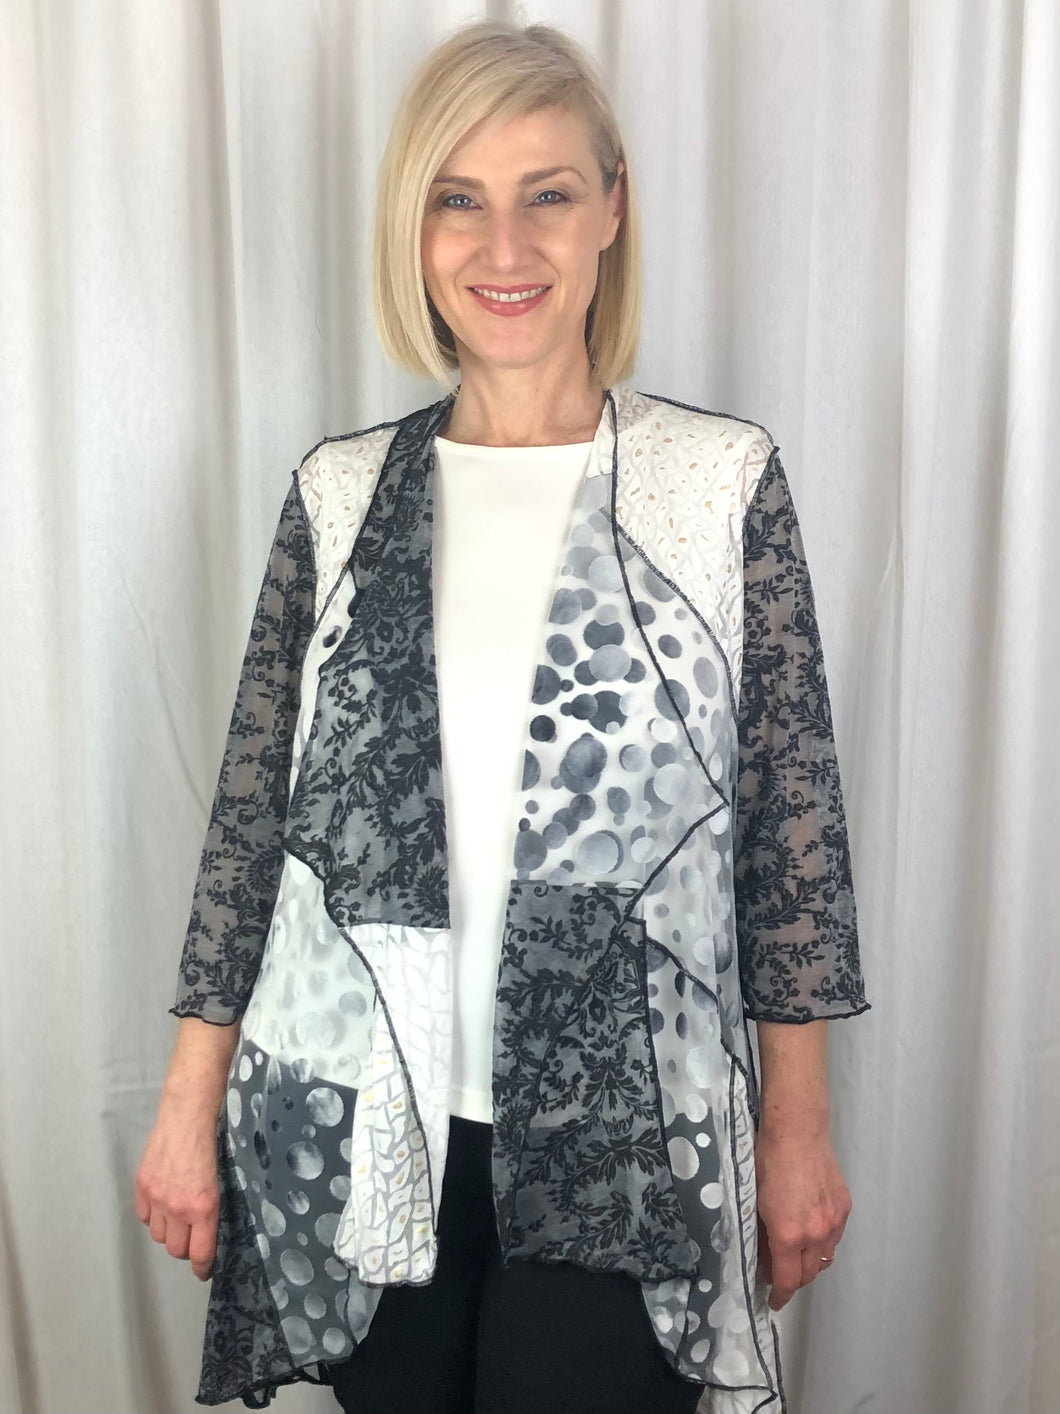 Our stunning Isabella Waterfall Jacket made from a variety of textured burnout panels is the ideal piece for Summer layering. Expertly designed to flatter the figure while hiding tummies and hips, it features a flowing longer line at the back. Made from Polyester/Viscose, it's fully washable and drip dries with no ironing required.